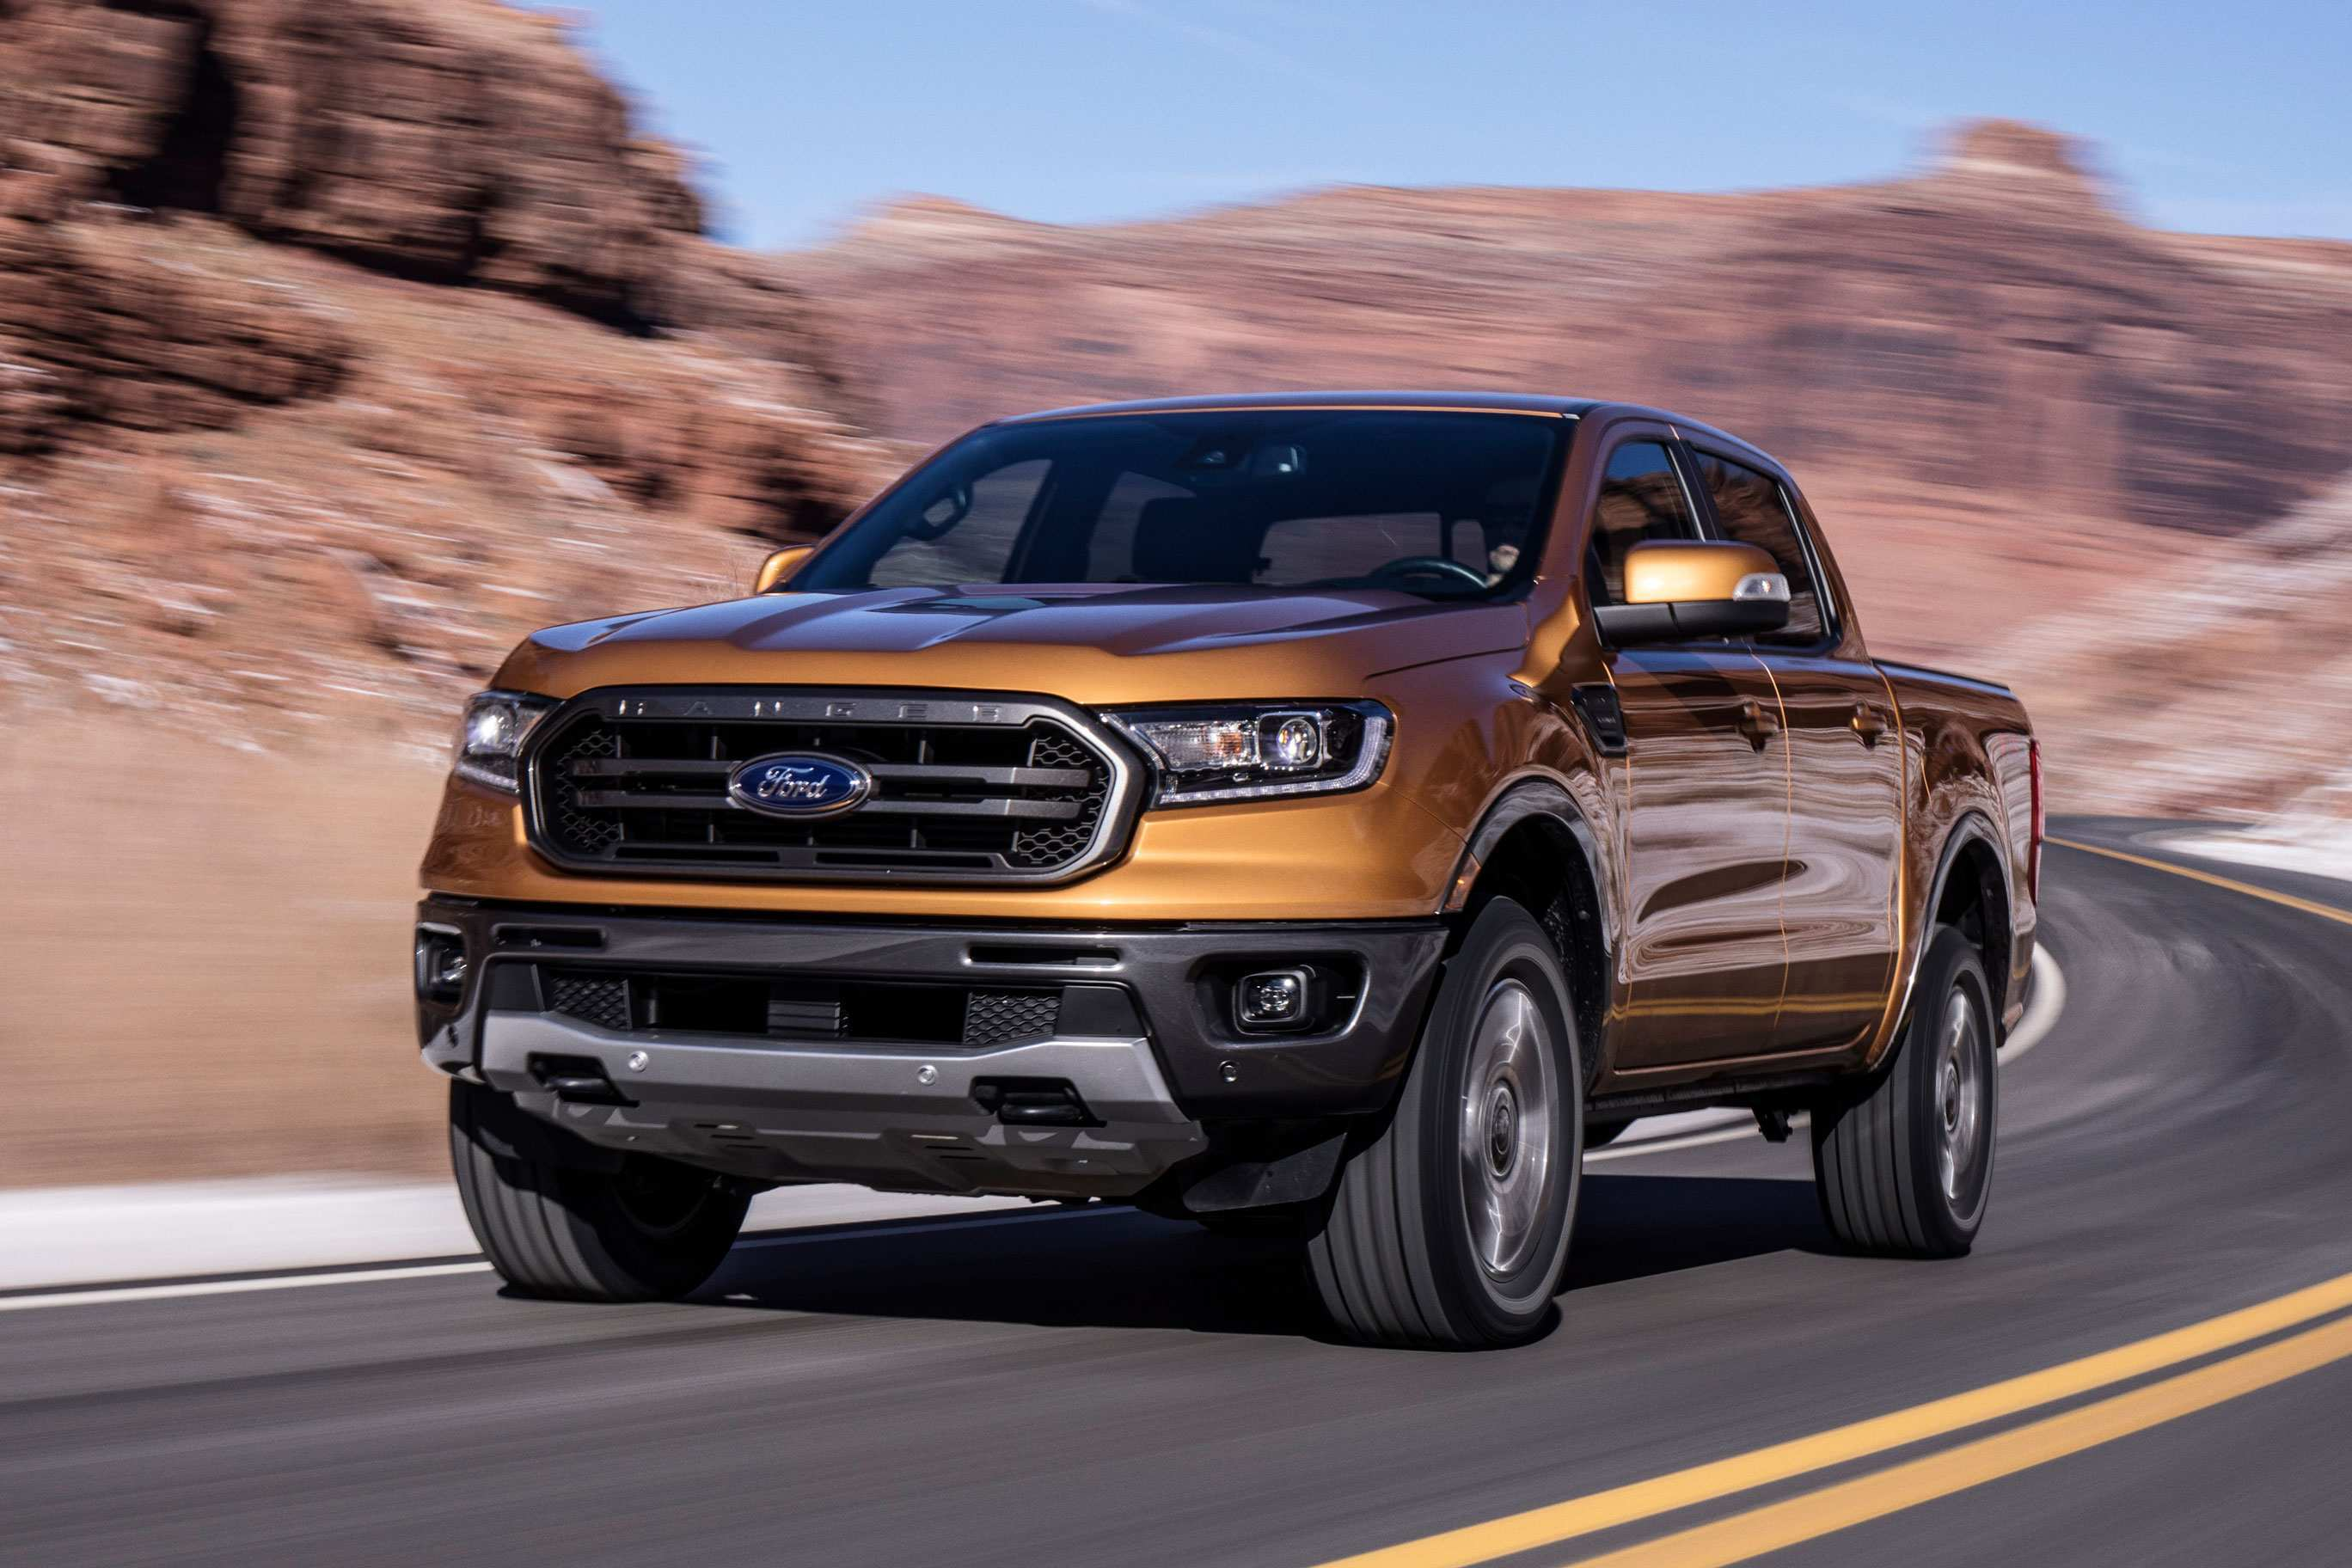 47 Concept of 2019 Ford Ranger Images Engine by 2019 Ford Ranger Images